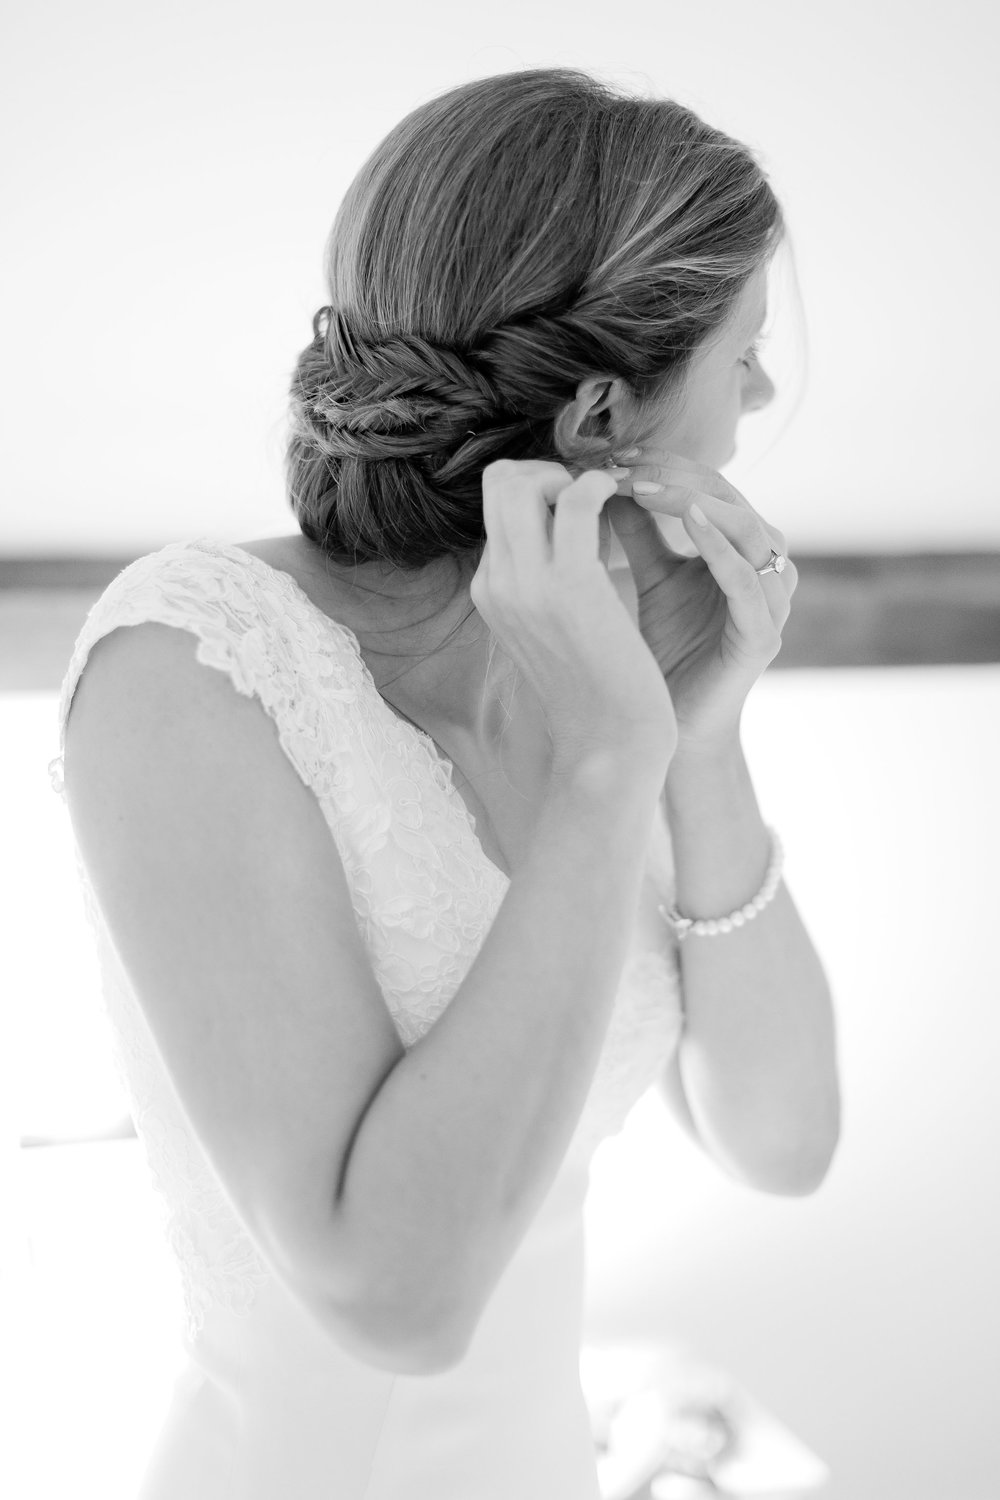 Lissie-simply-beautiful-wedding-hair-bride-bridal-chiddingstone-kent